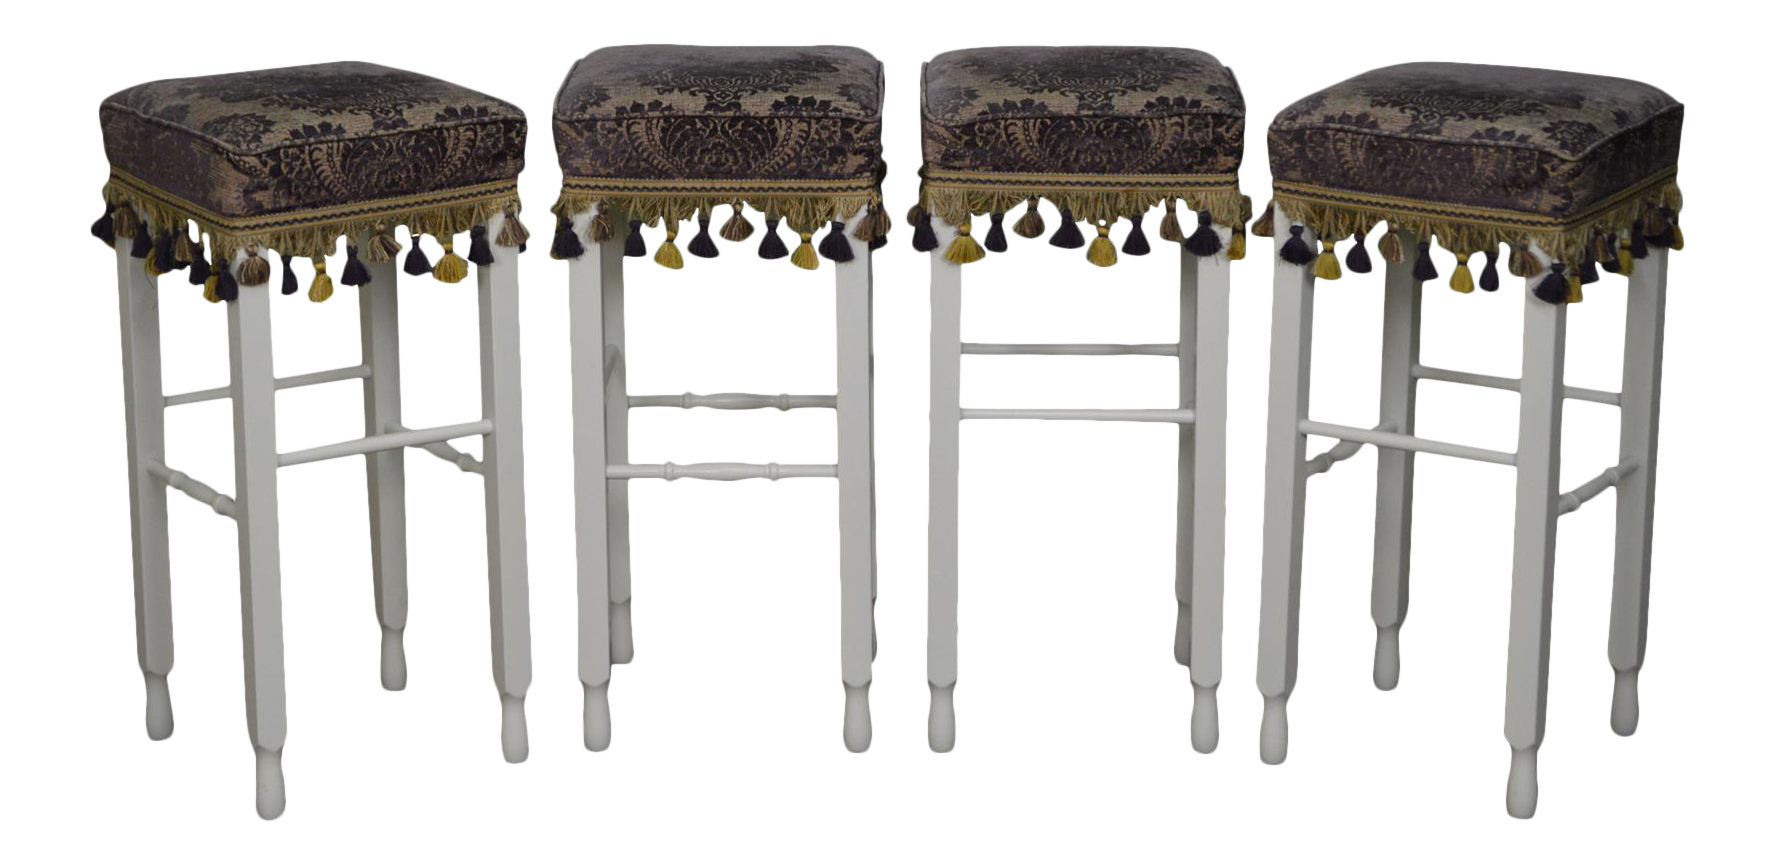 White Bar Stools w Upholstered Seats Set of 4 Chairish : white bar stools w upholstered seats set of 4 5442 from www.chairish.com size 1774 x 866 png 965kB